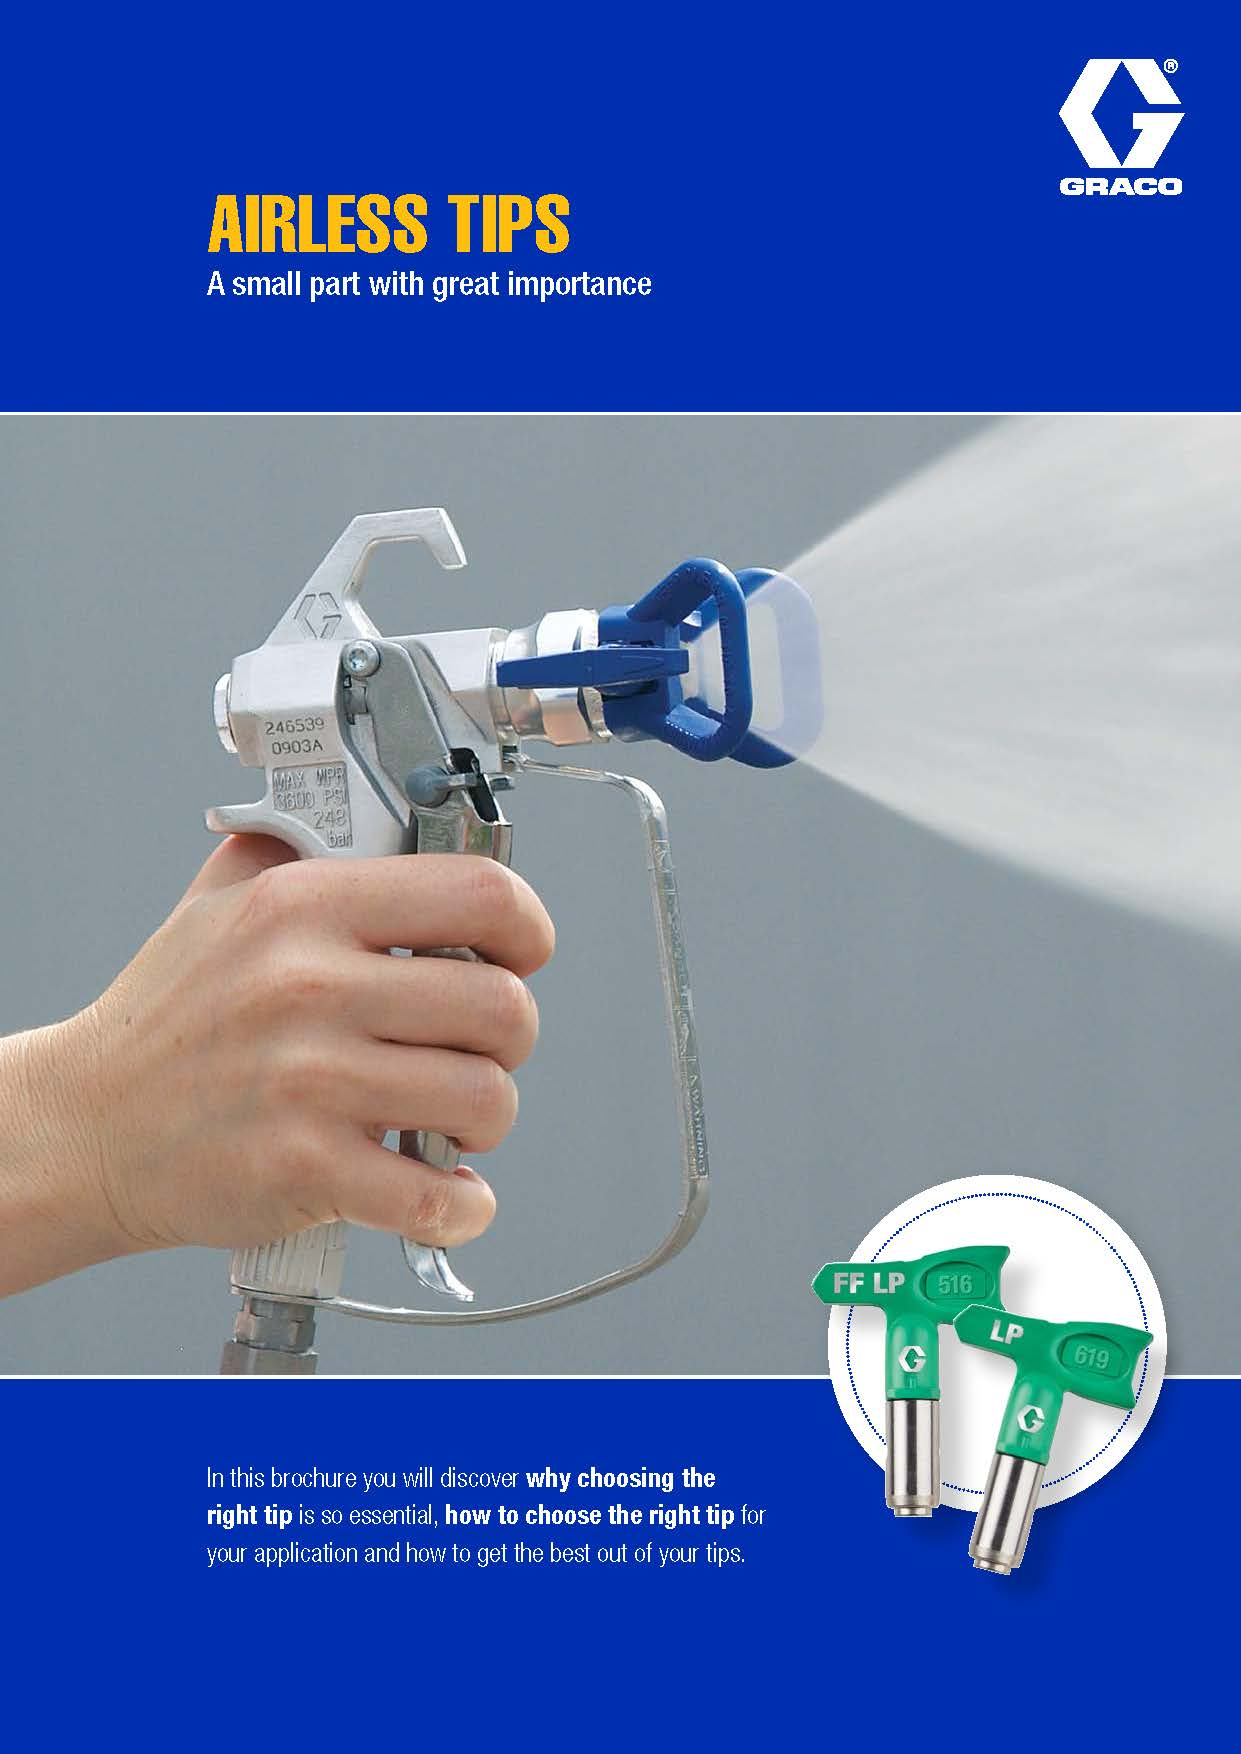 Airless Tips Brochure - ProQuip